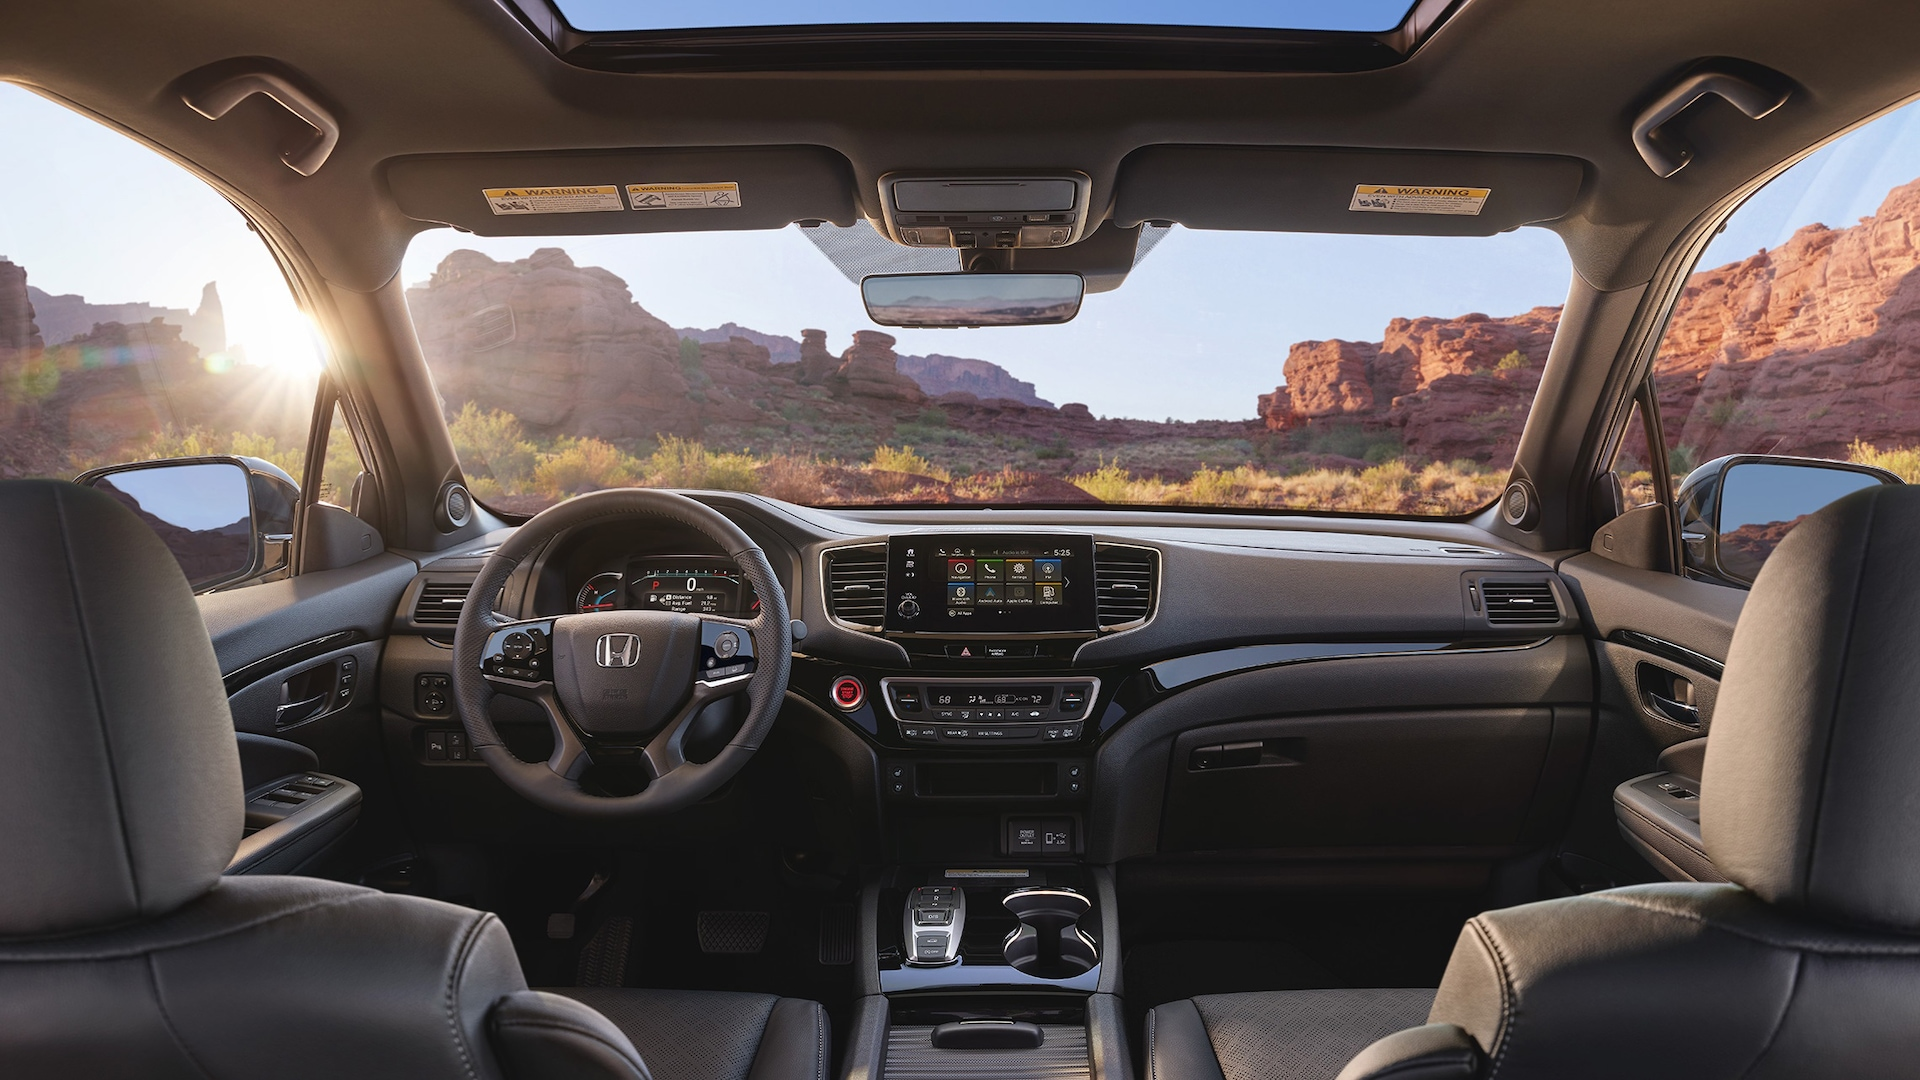 2020 Honda Passport Elite interior view with Black Leather interior showing the major instrument panel, featuring Apple CarPlay® integration on the Display Audio touch-screen.